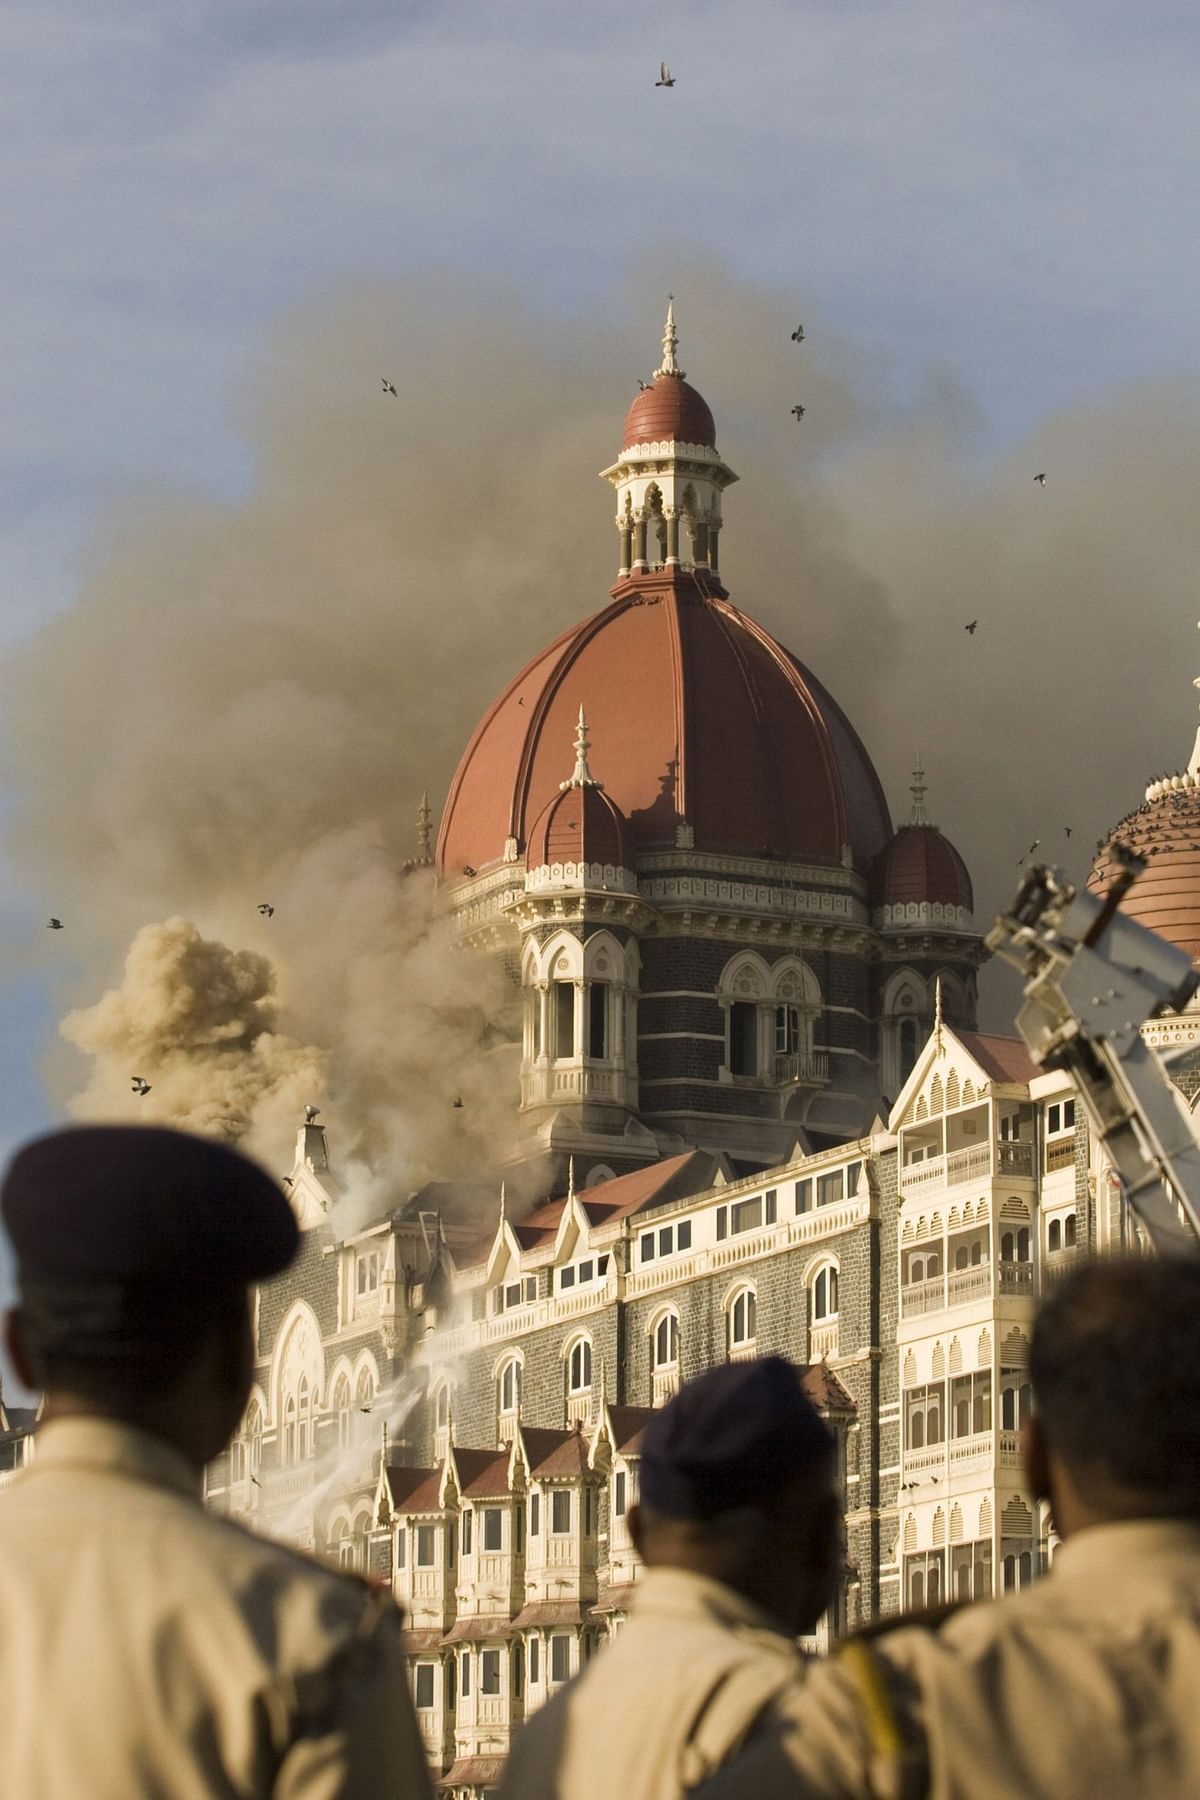 Security forces personnel watch as a fire rages in the Taj Mahal Palace and Tower hotel in Mumbai, India, in 2008 (Photographer: Prashanth Vishwanathan/Bloomberg)